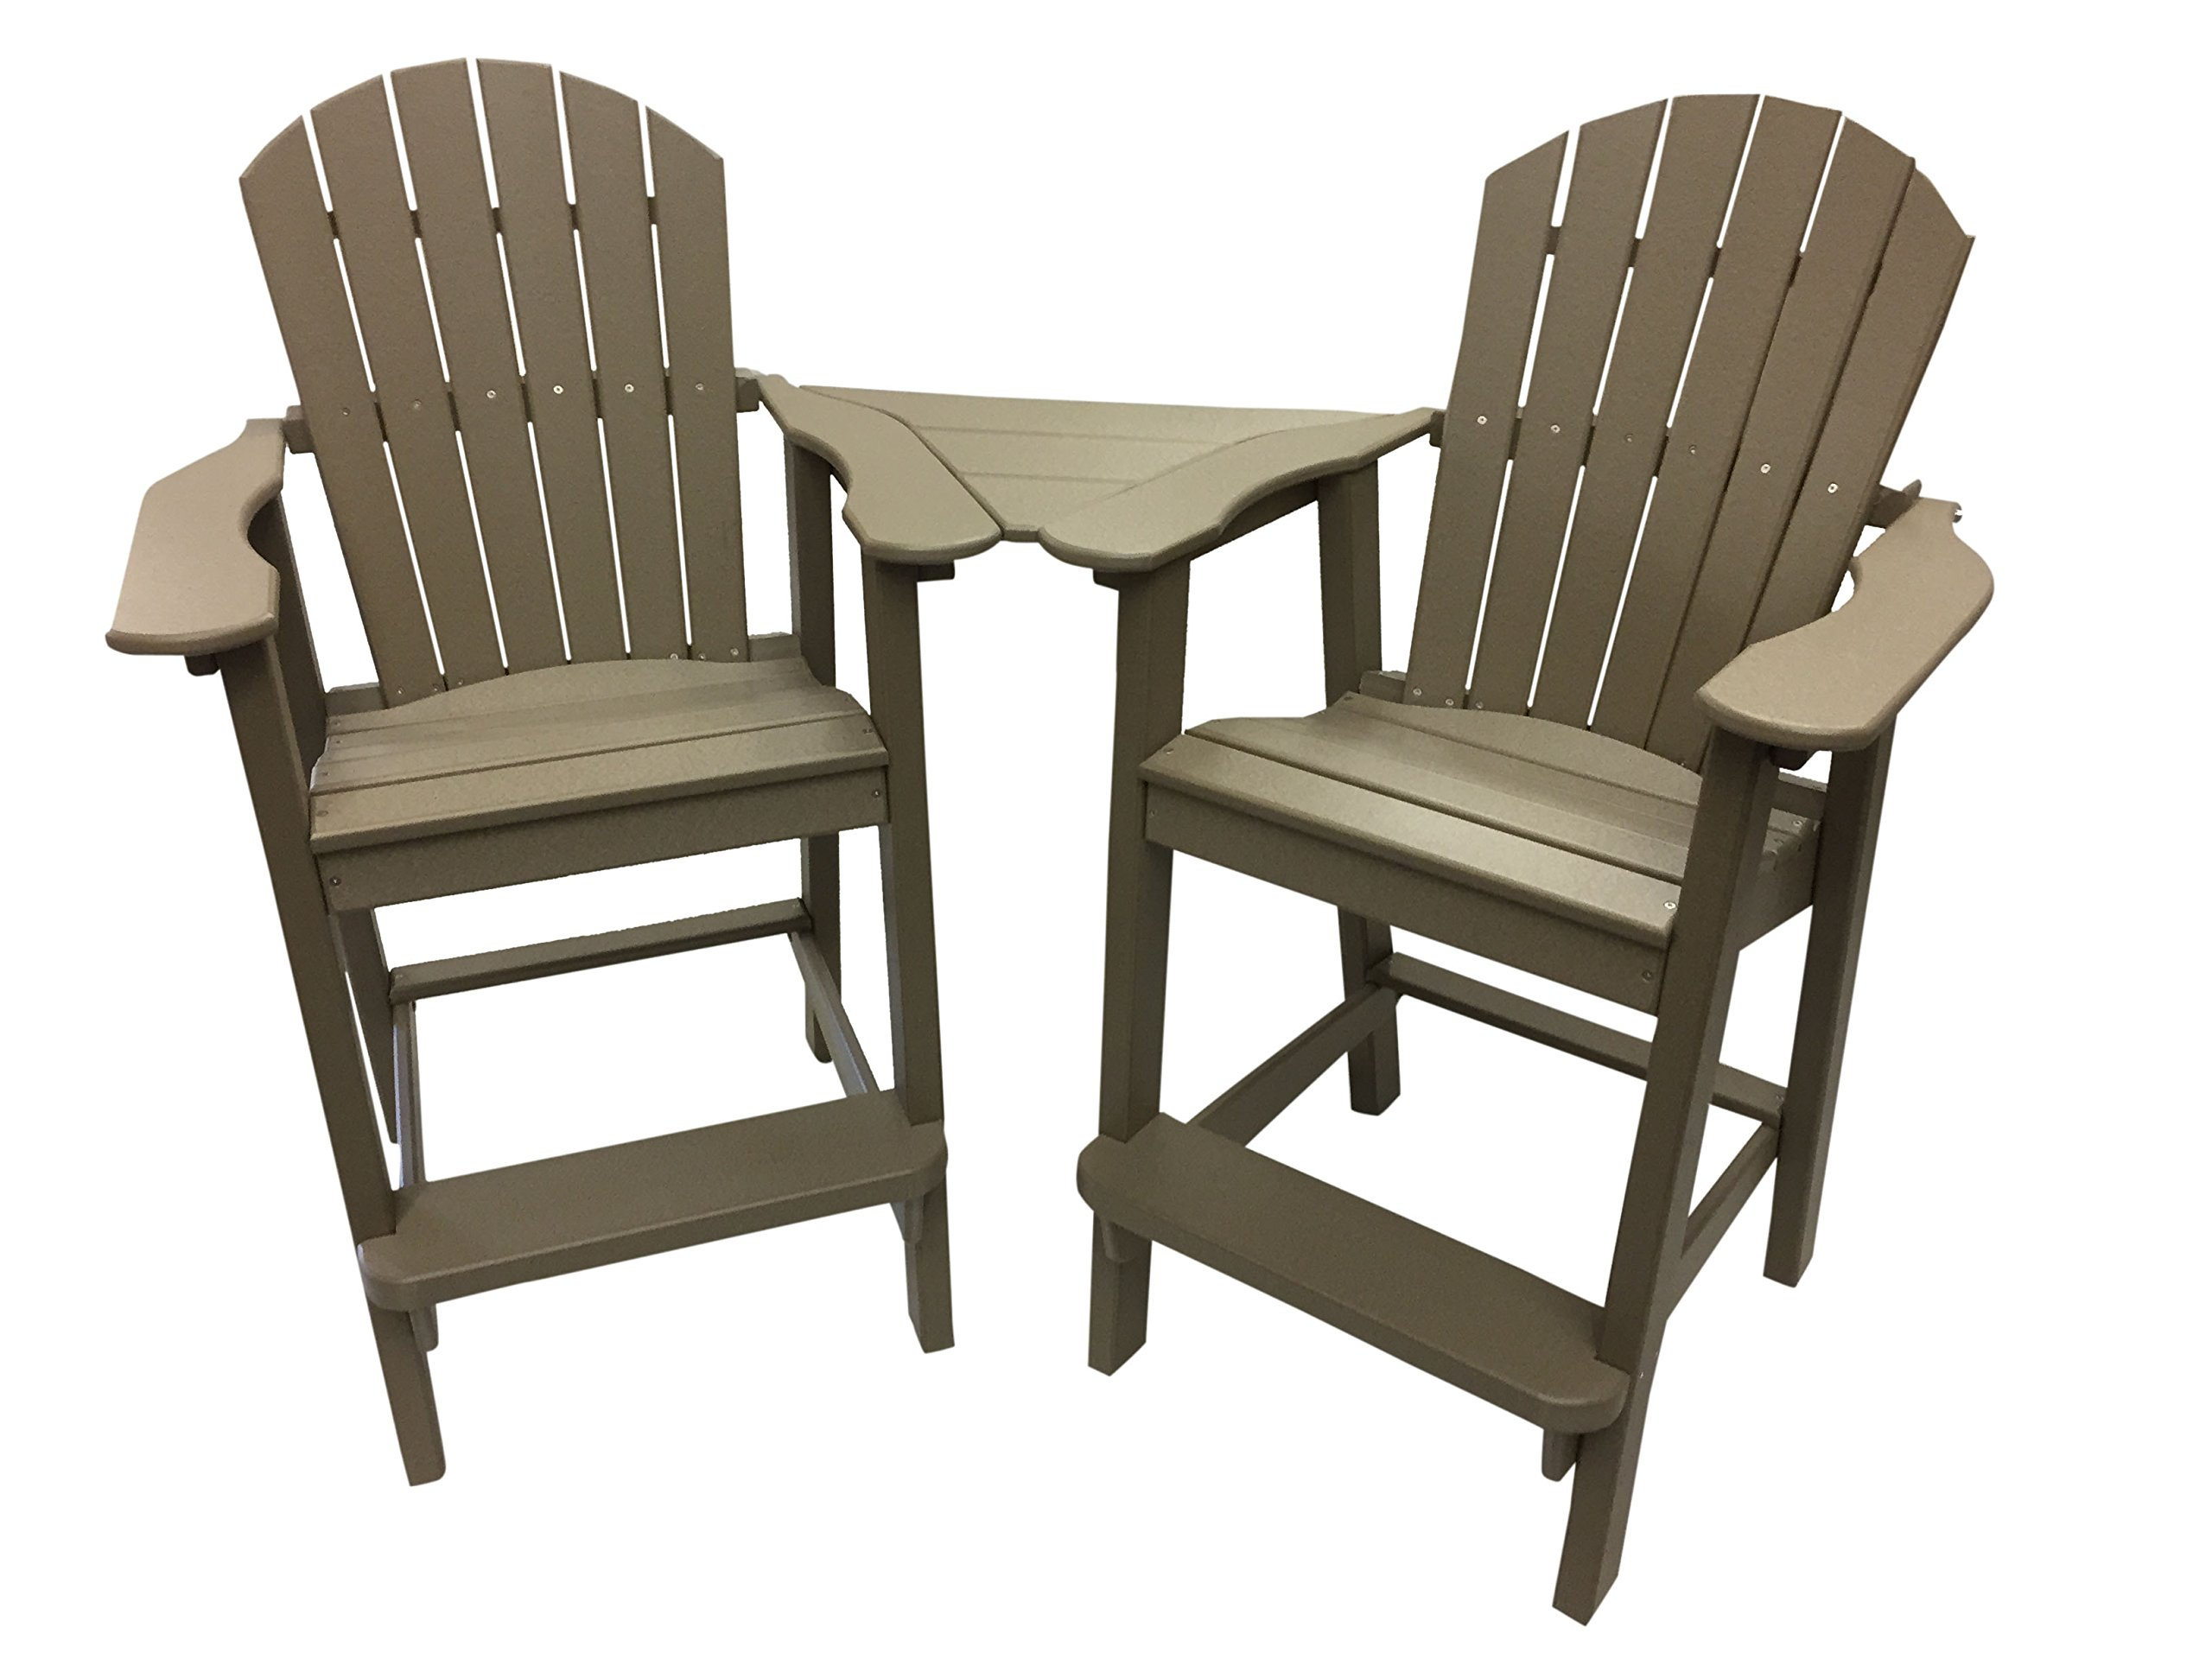 Best Rated In Adirondack Chairs & Helpful Customer Reviews